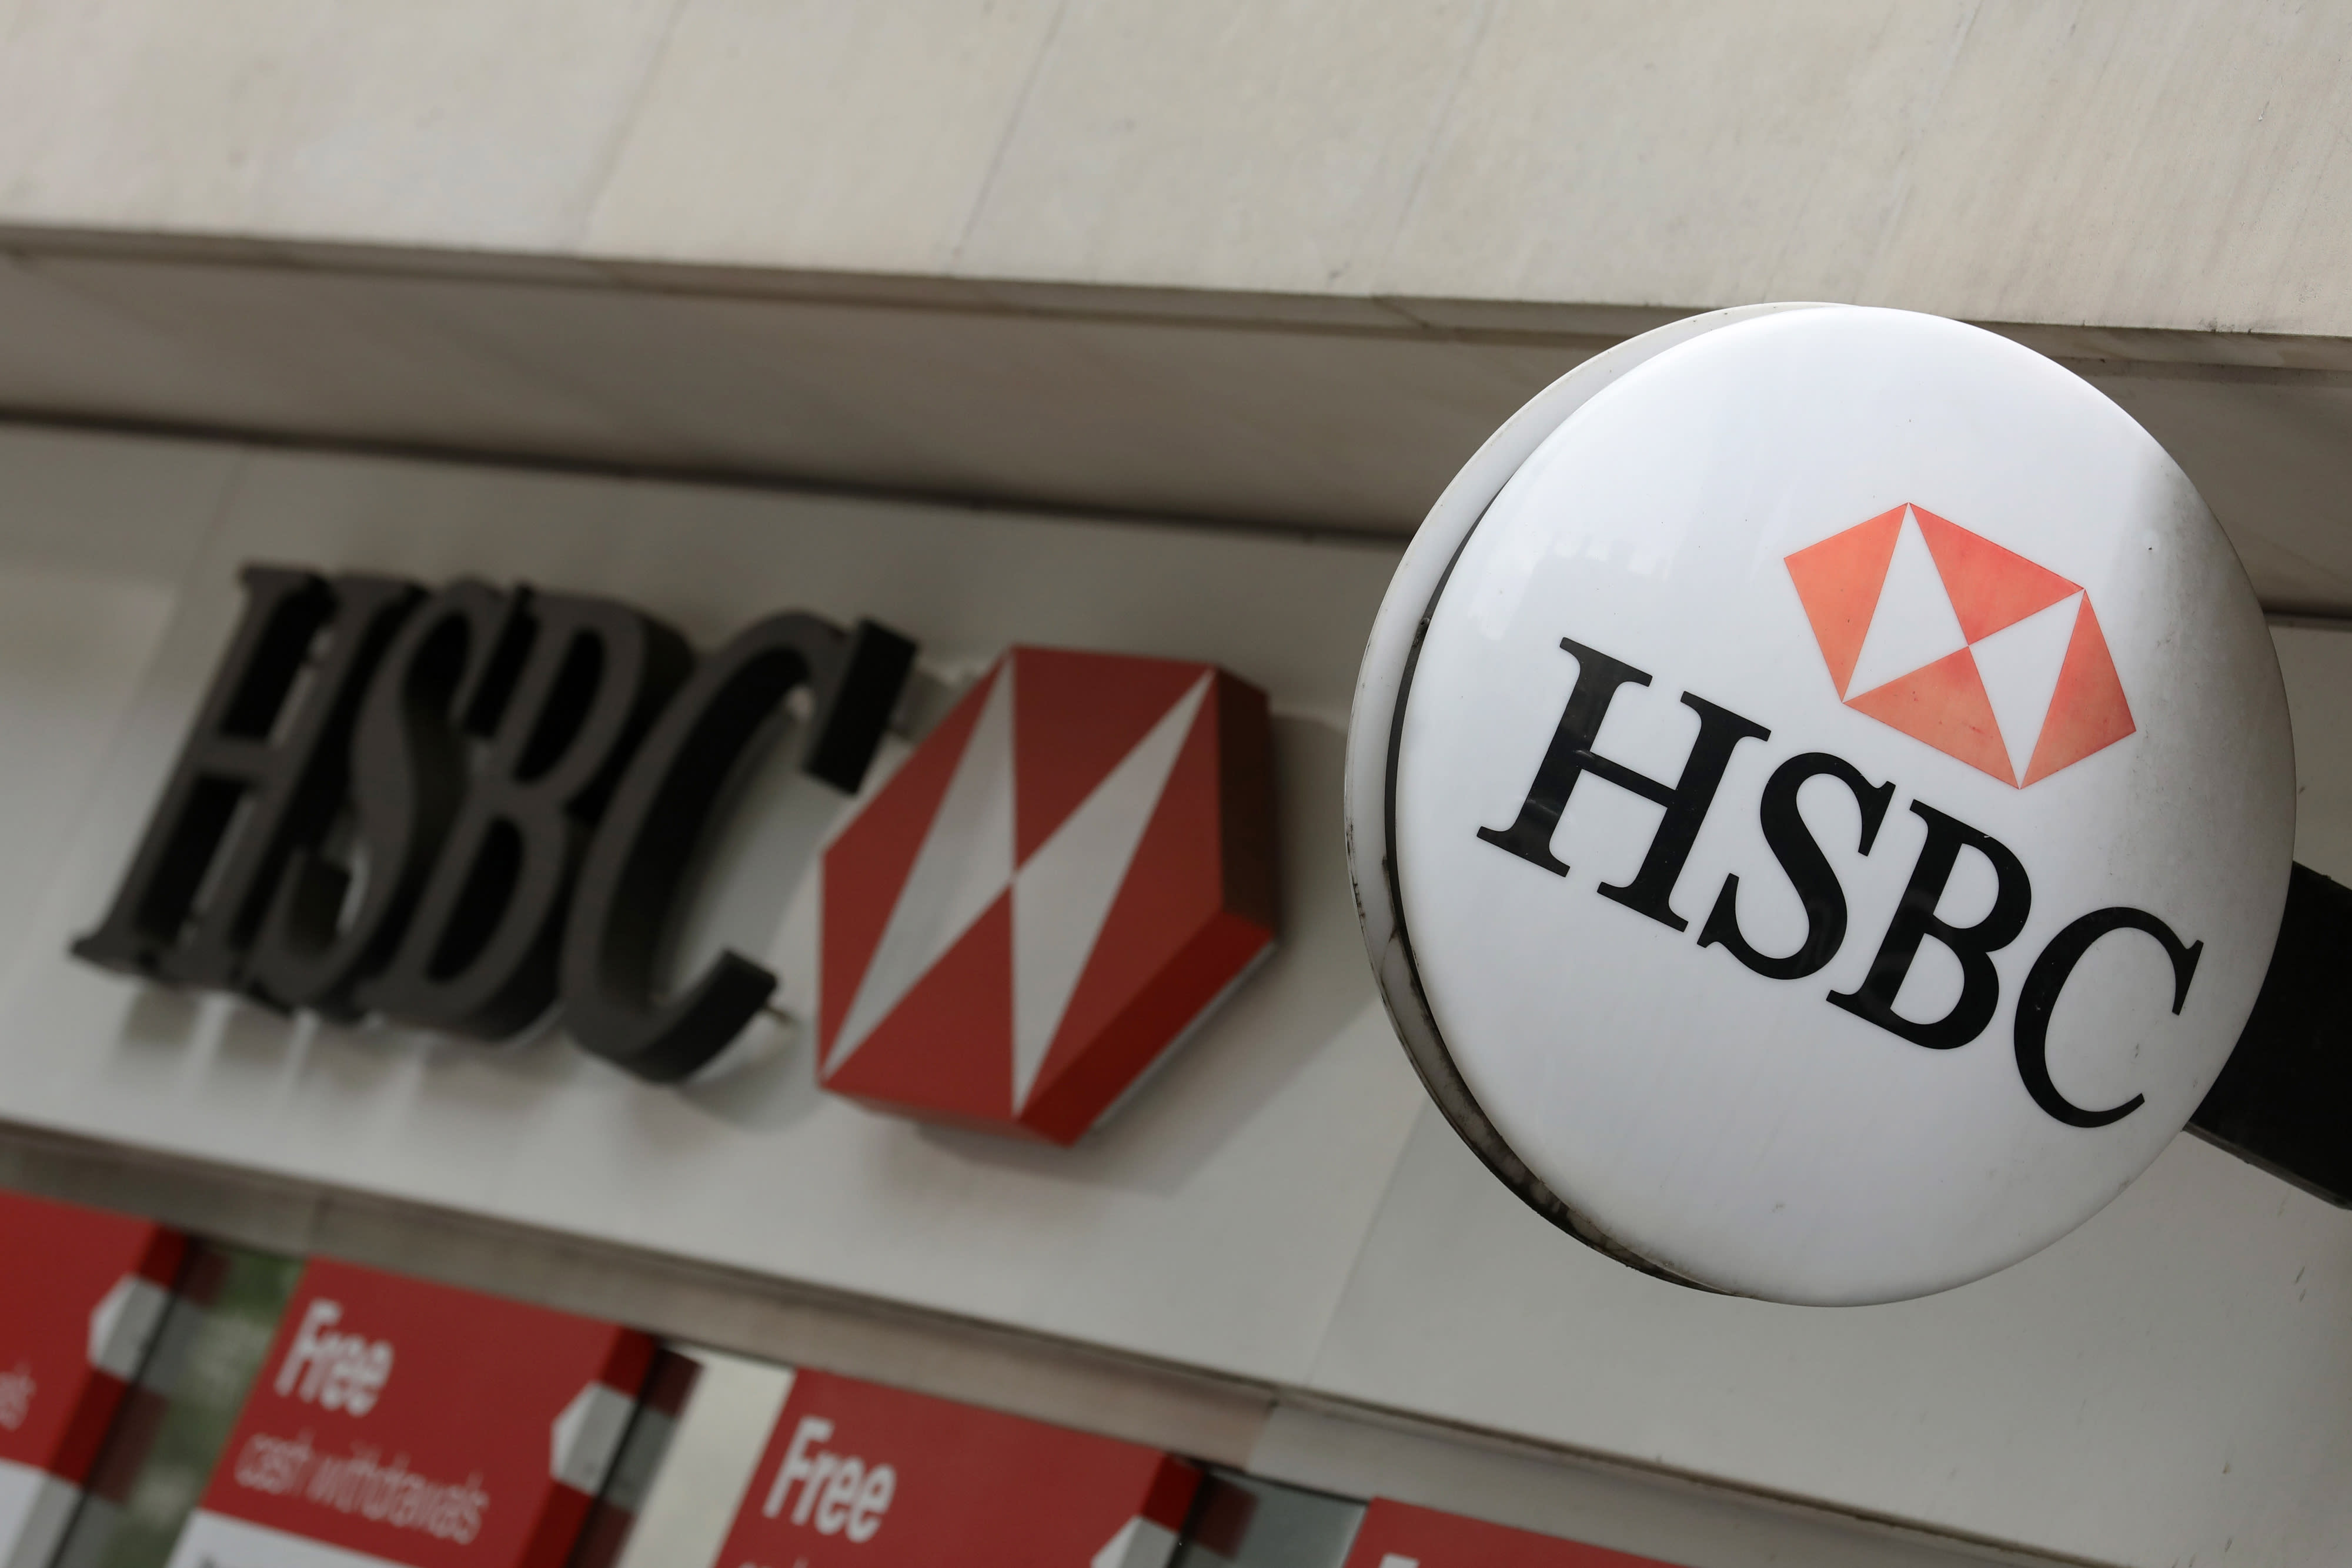 HSBC reportedly plans to cut up to 10,000 jobs in drive to slash costs